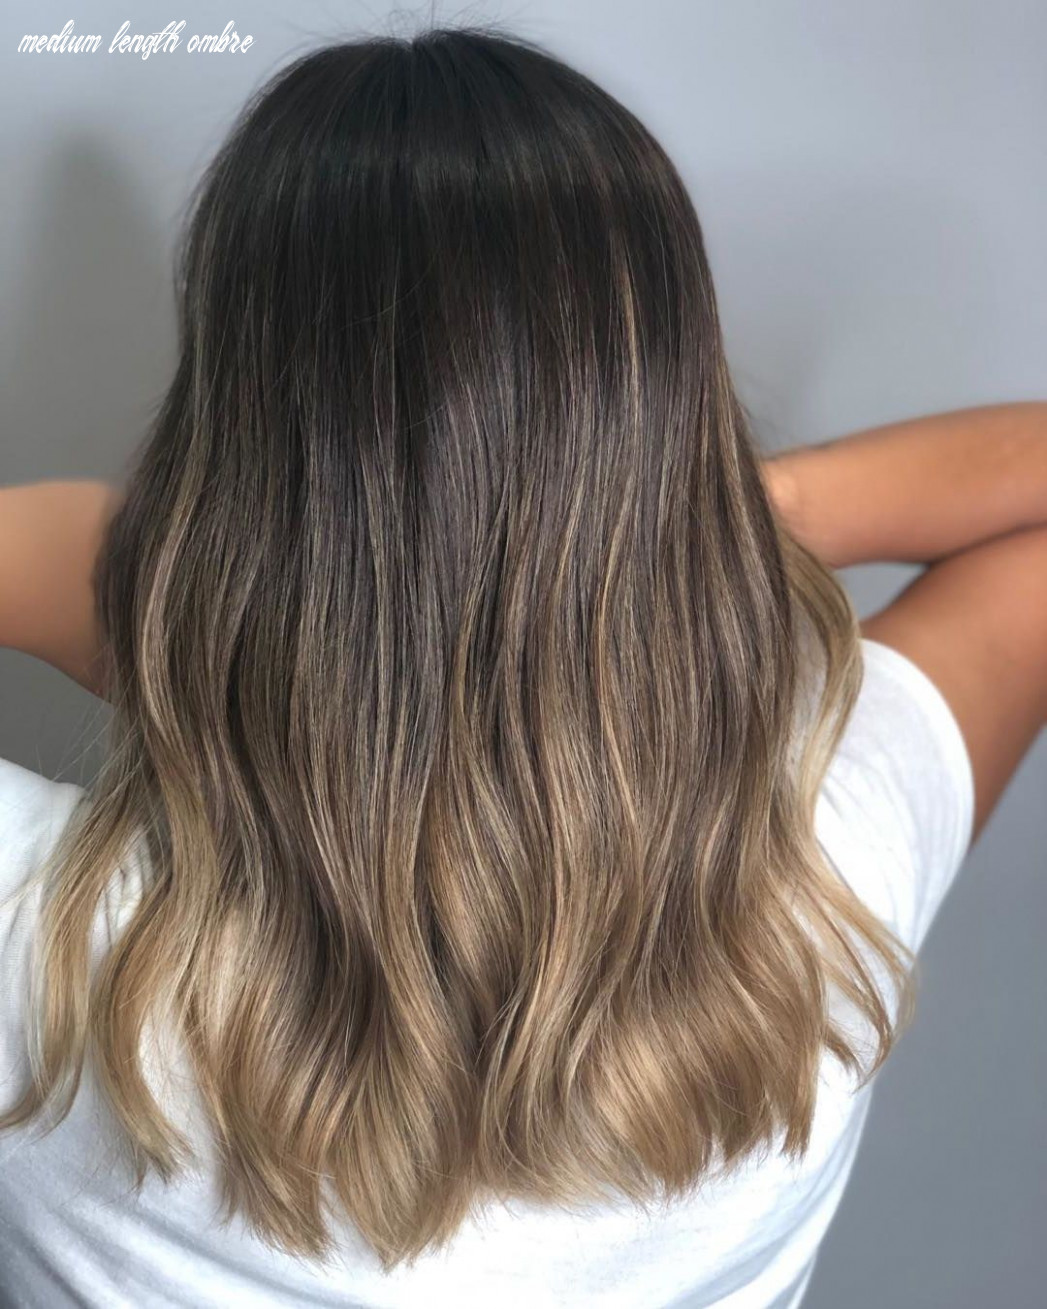 11 ombre hair colors for medium length brunettes | ombre hair